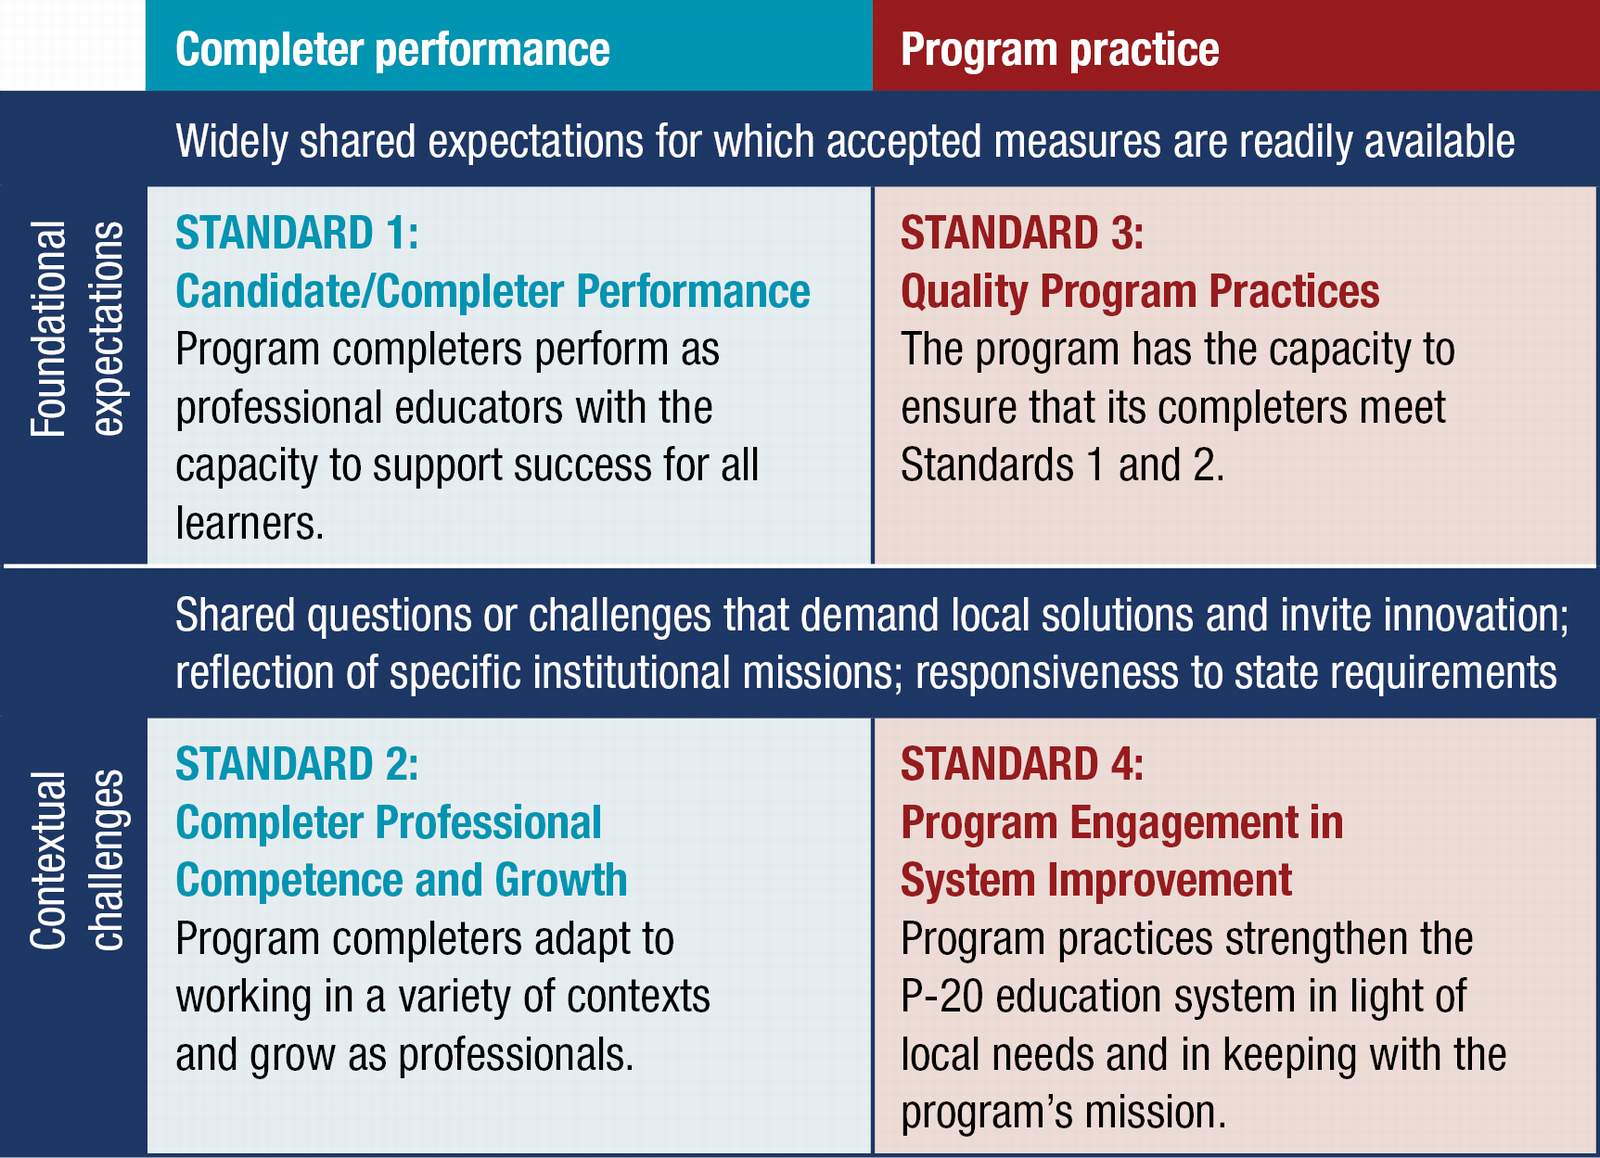 The 4 AAQEP Standards